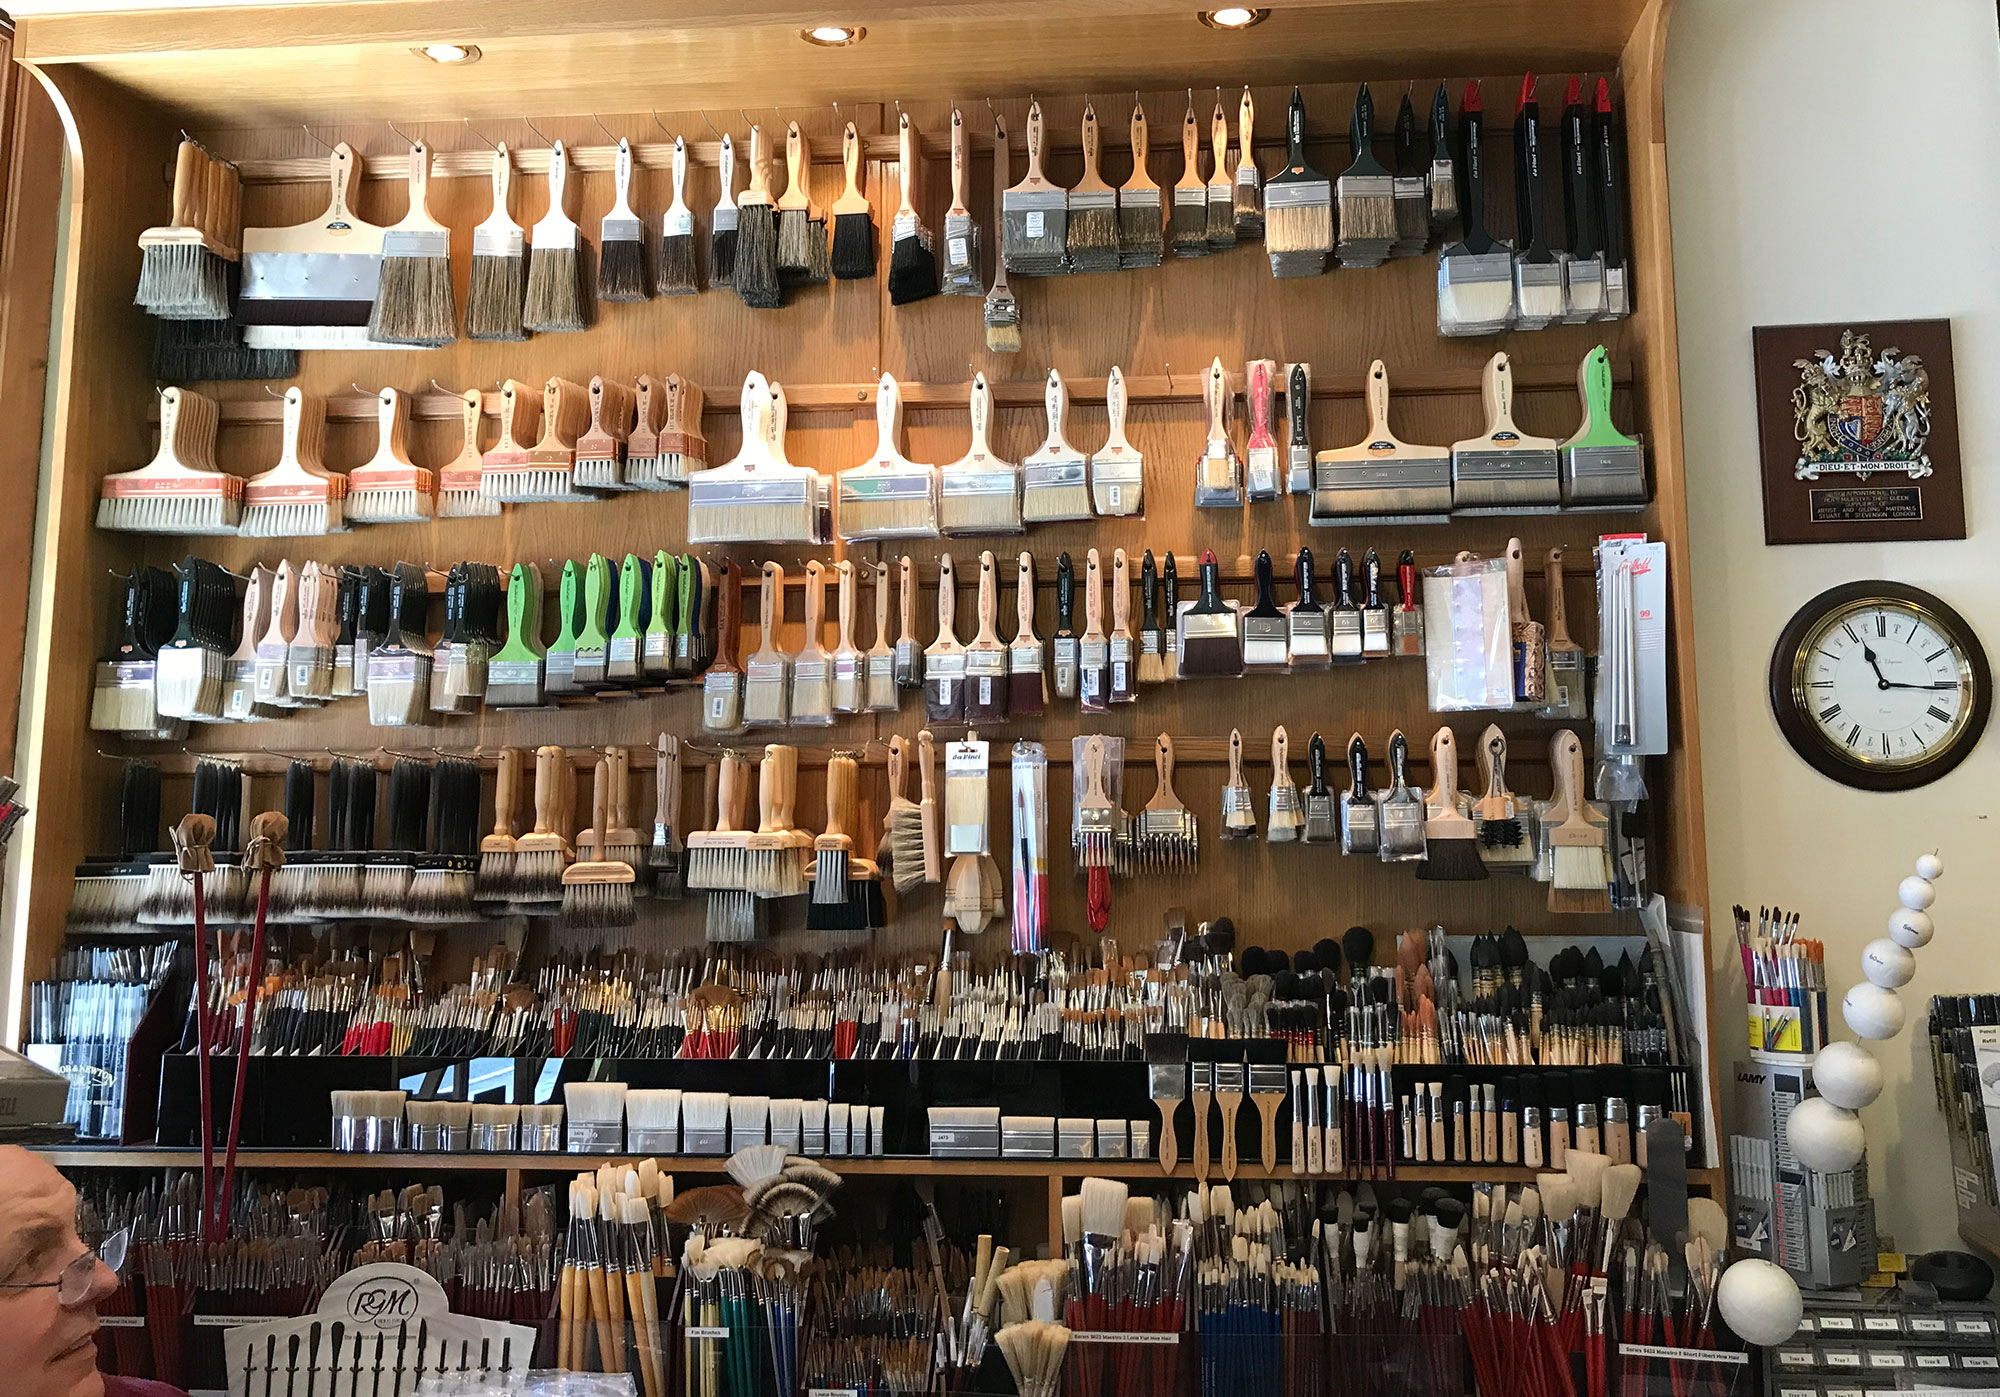 Brushes at Stuart R Stevenson Stationery & Art Shop